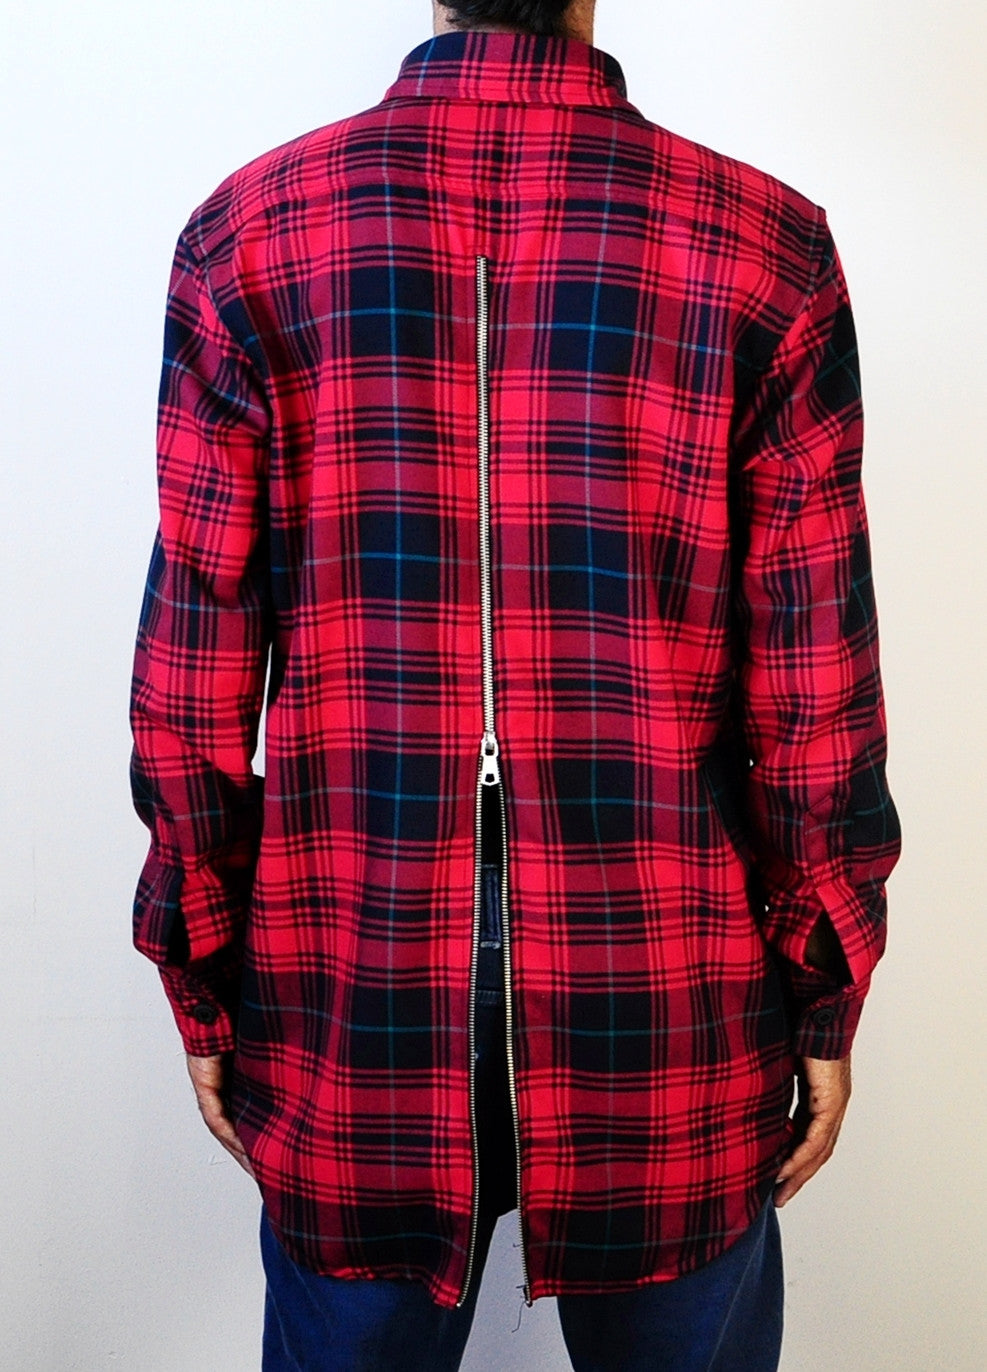 Rear Back-YKK Zip Slim Fit Long Sleeve Flannel Plaid Check Shirt Button Front Shirt - Red//Blue-